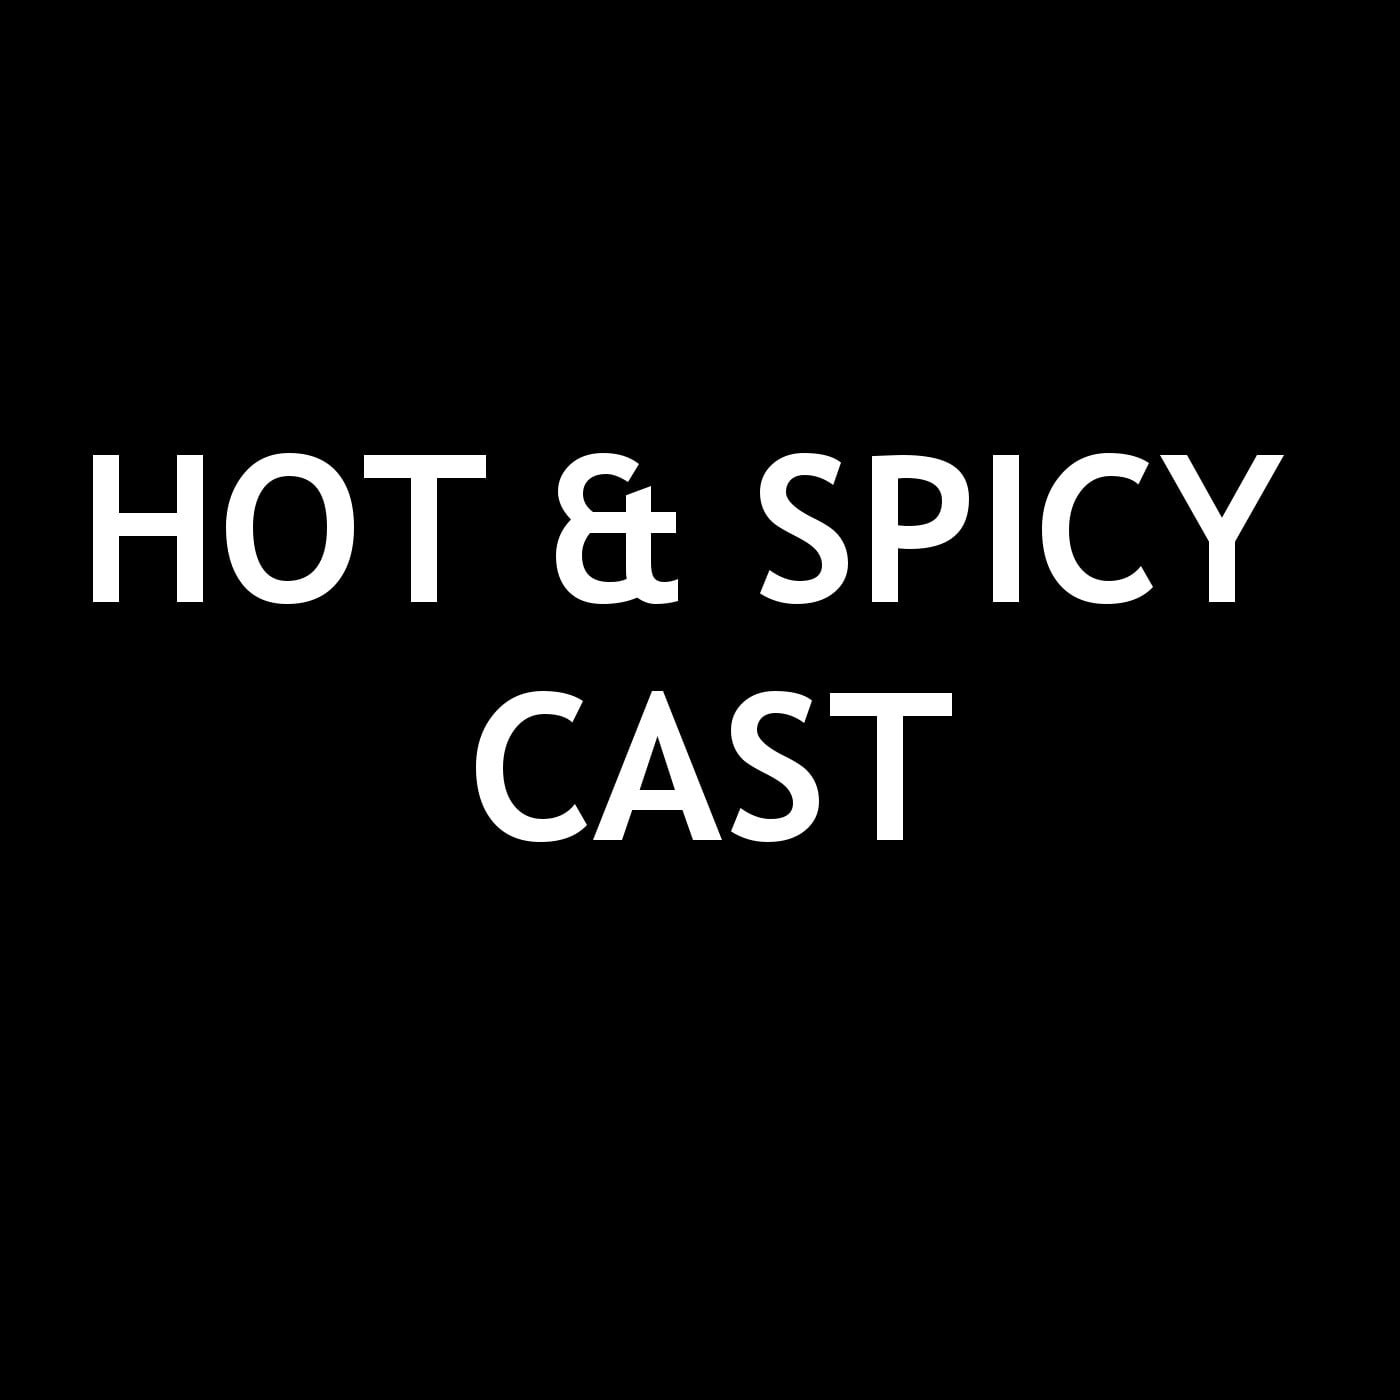 Hot & Spicy Cast